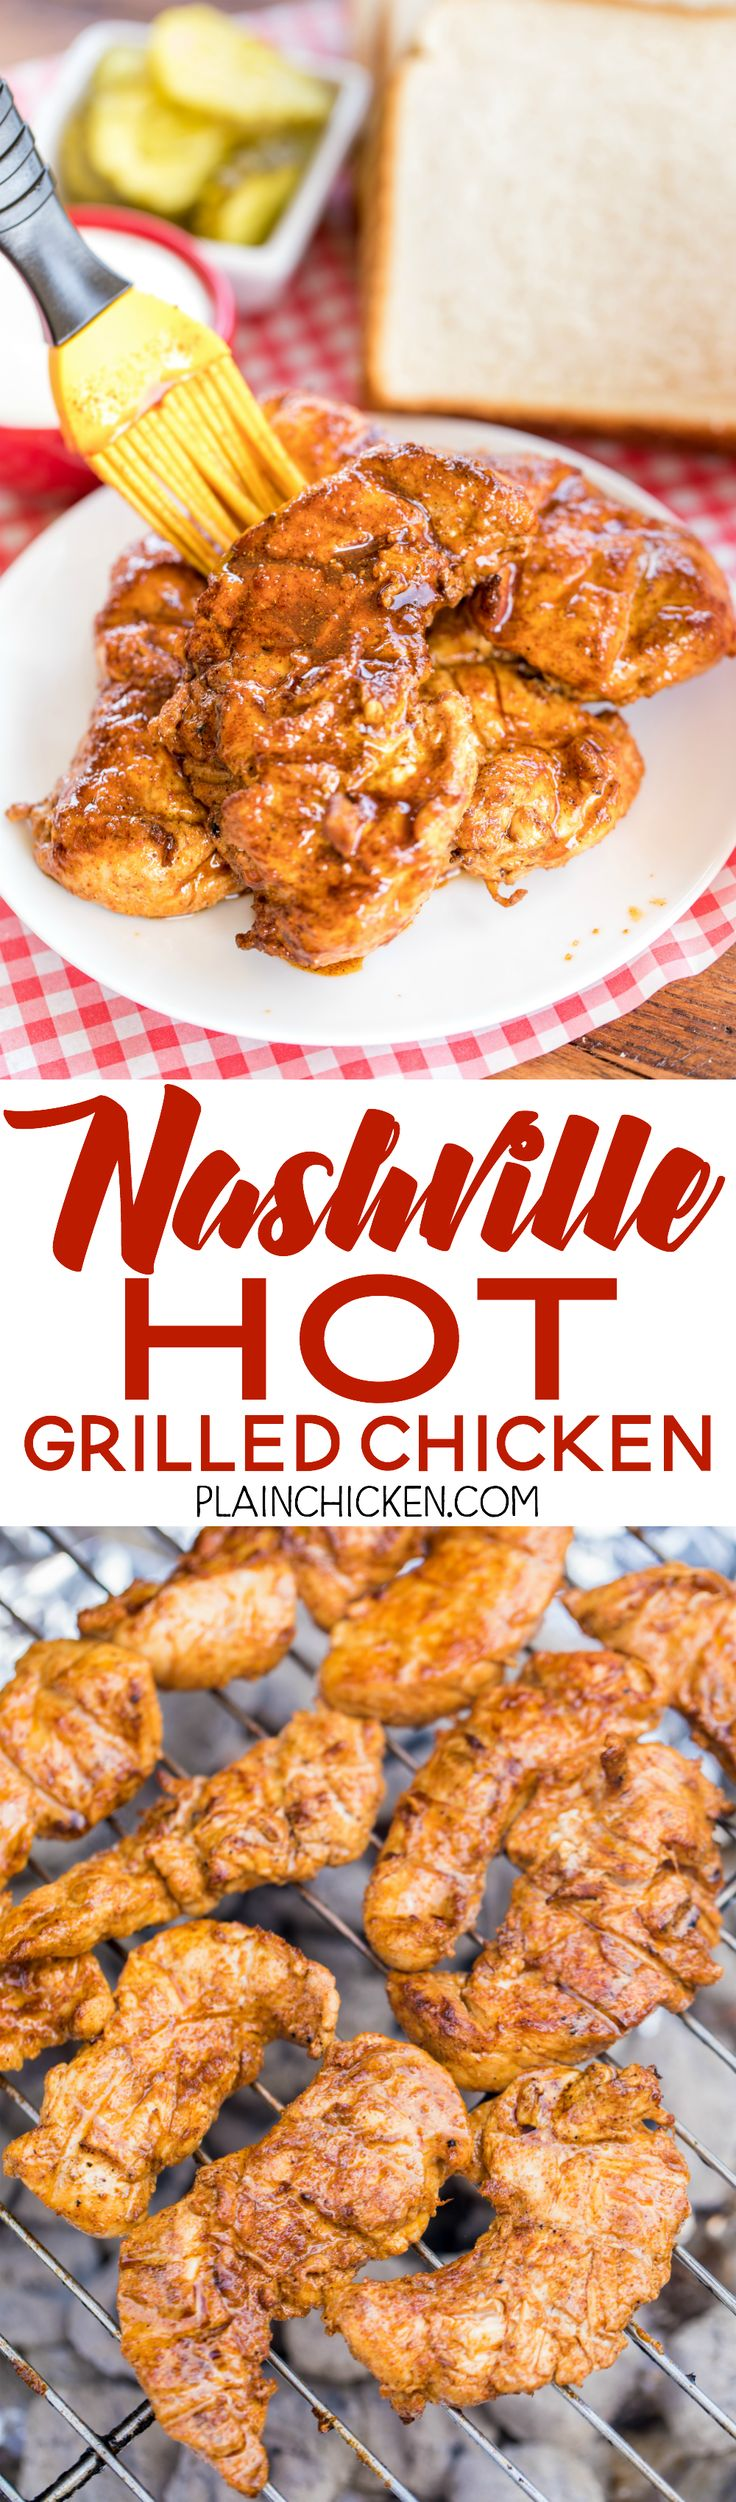 Nashville Hot Grilled Chicken - grilled version of the best spicy chicken around. Chicken marinated in cayenne pepper, brown sugar, chili powder, paprika, garlic powder and olive oil. Reserve some of the marinade to brush on the cooked chicken if you want it really HOT! Seriously THE BEST grilled chicken recipe! Serve with pickles, ranch and white bread! We are making this again this weekend - SO GOOD!